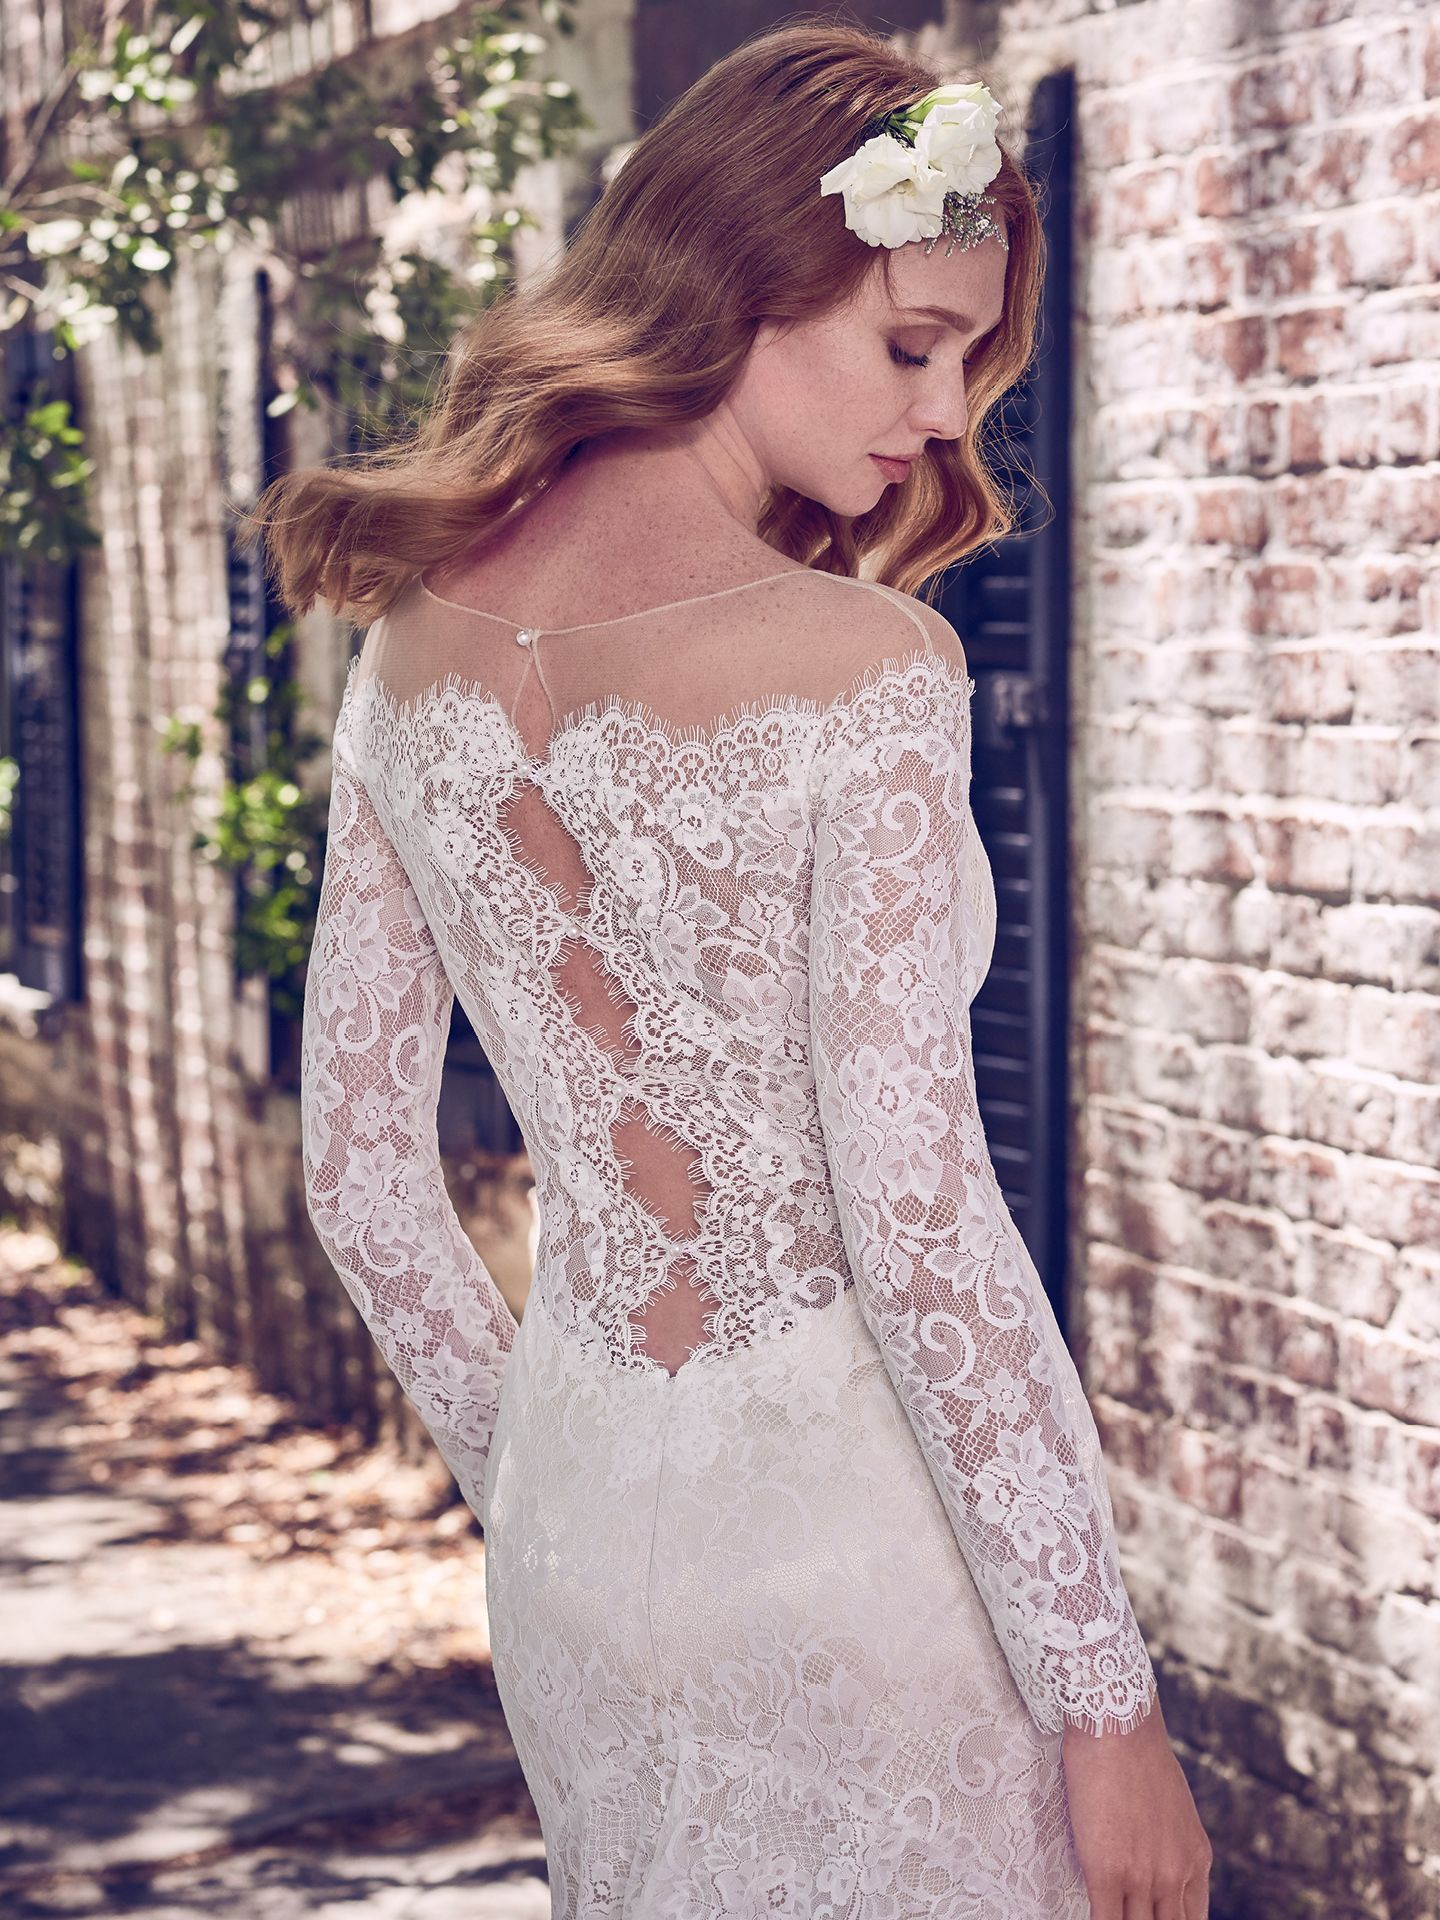 Types Of Lace Wedding Dresses To Know While Shopping For Your Gown ...